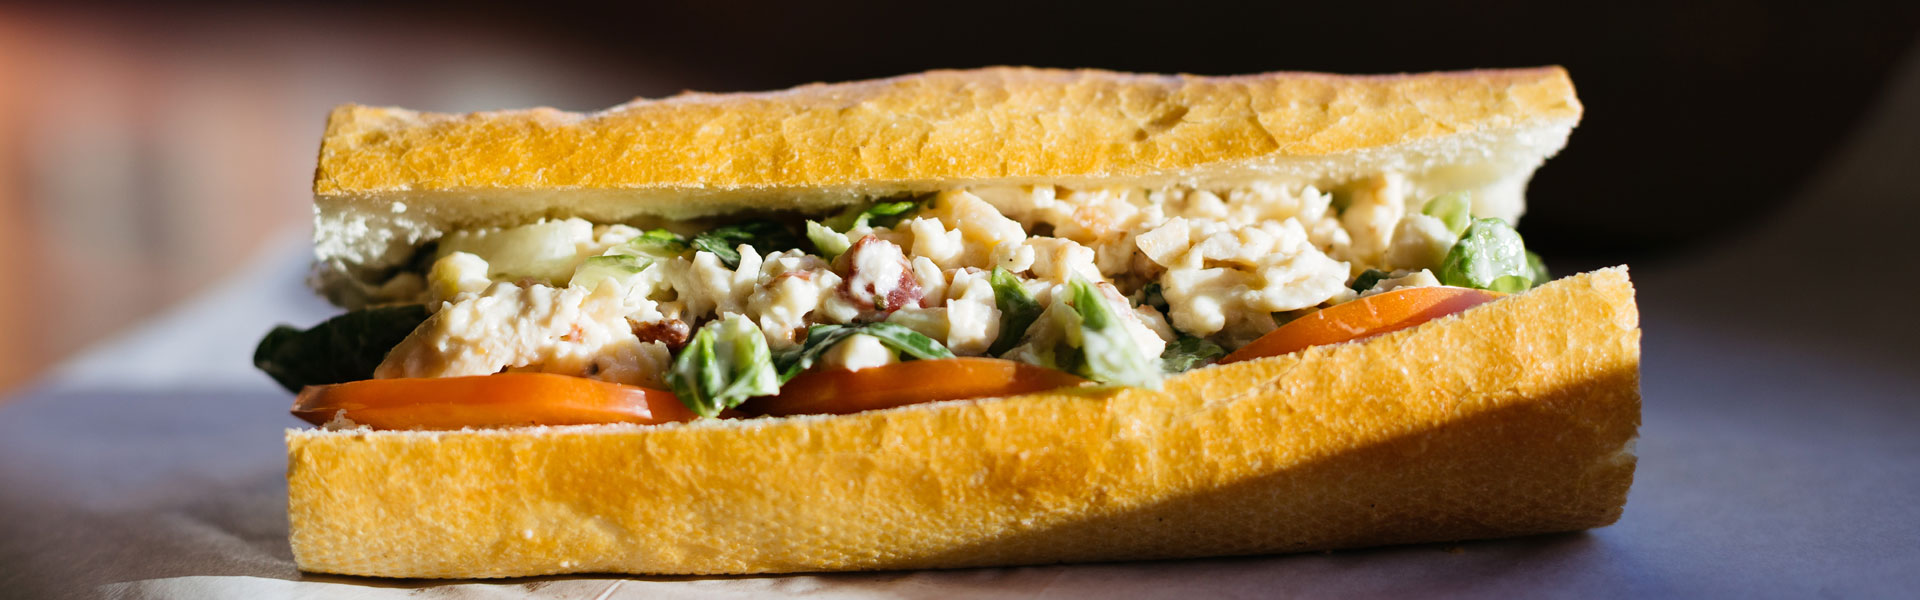 Order sandwiches from Half Fast Subs